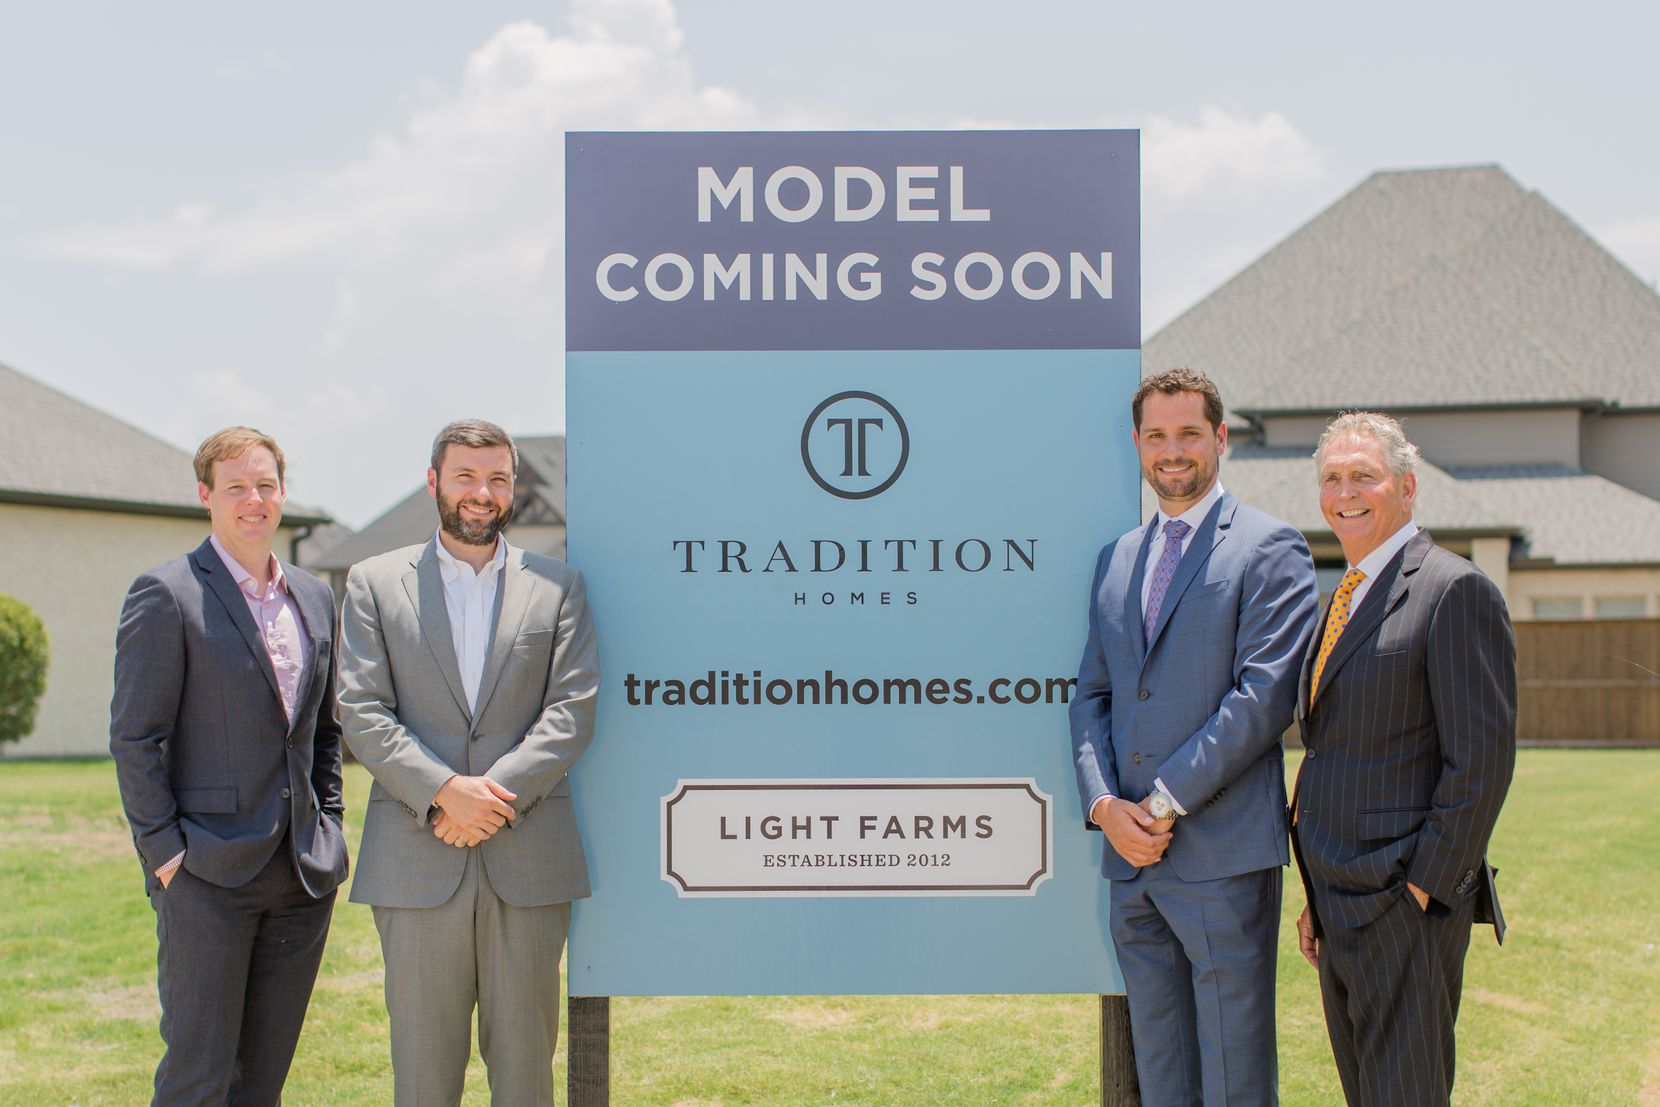 Left to right: Jake Wagner (co-CEO of Republic Property Group), Tony Ruggeri (co-CEO of Republic Property Group), Zach Schneider (president and CEO at Tradition Homes) and Bill Darling (Chairman at Tradition Homes).